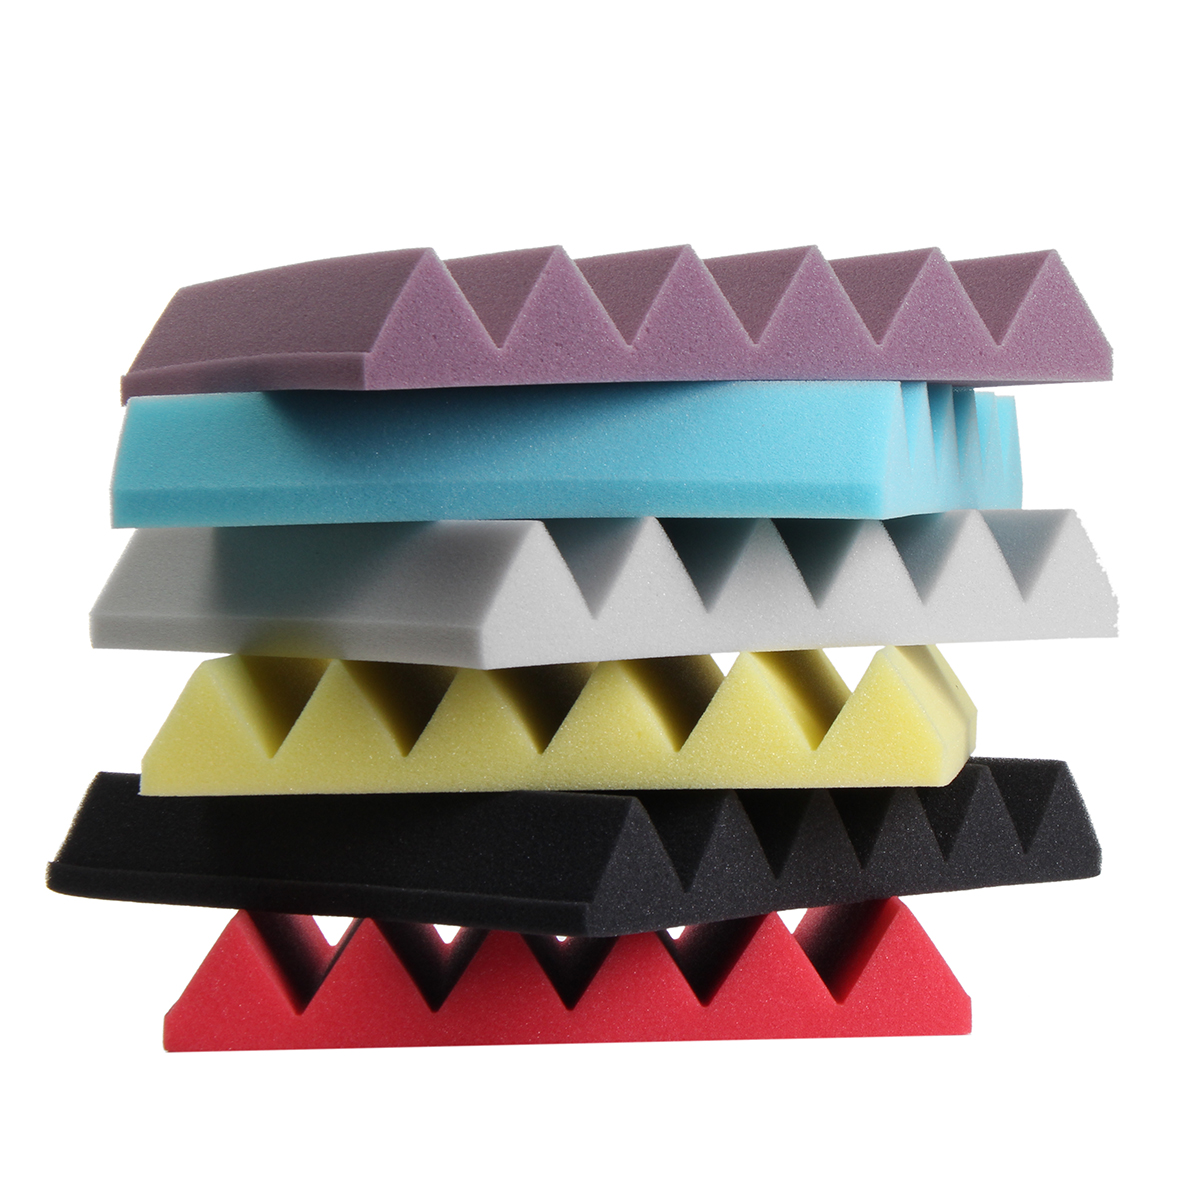 "Flame Retardance 12*12*2"" Studio Acoustic Foam Panel Tile Sound Absorption Proofing Wedge"